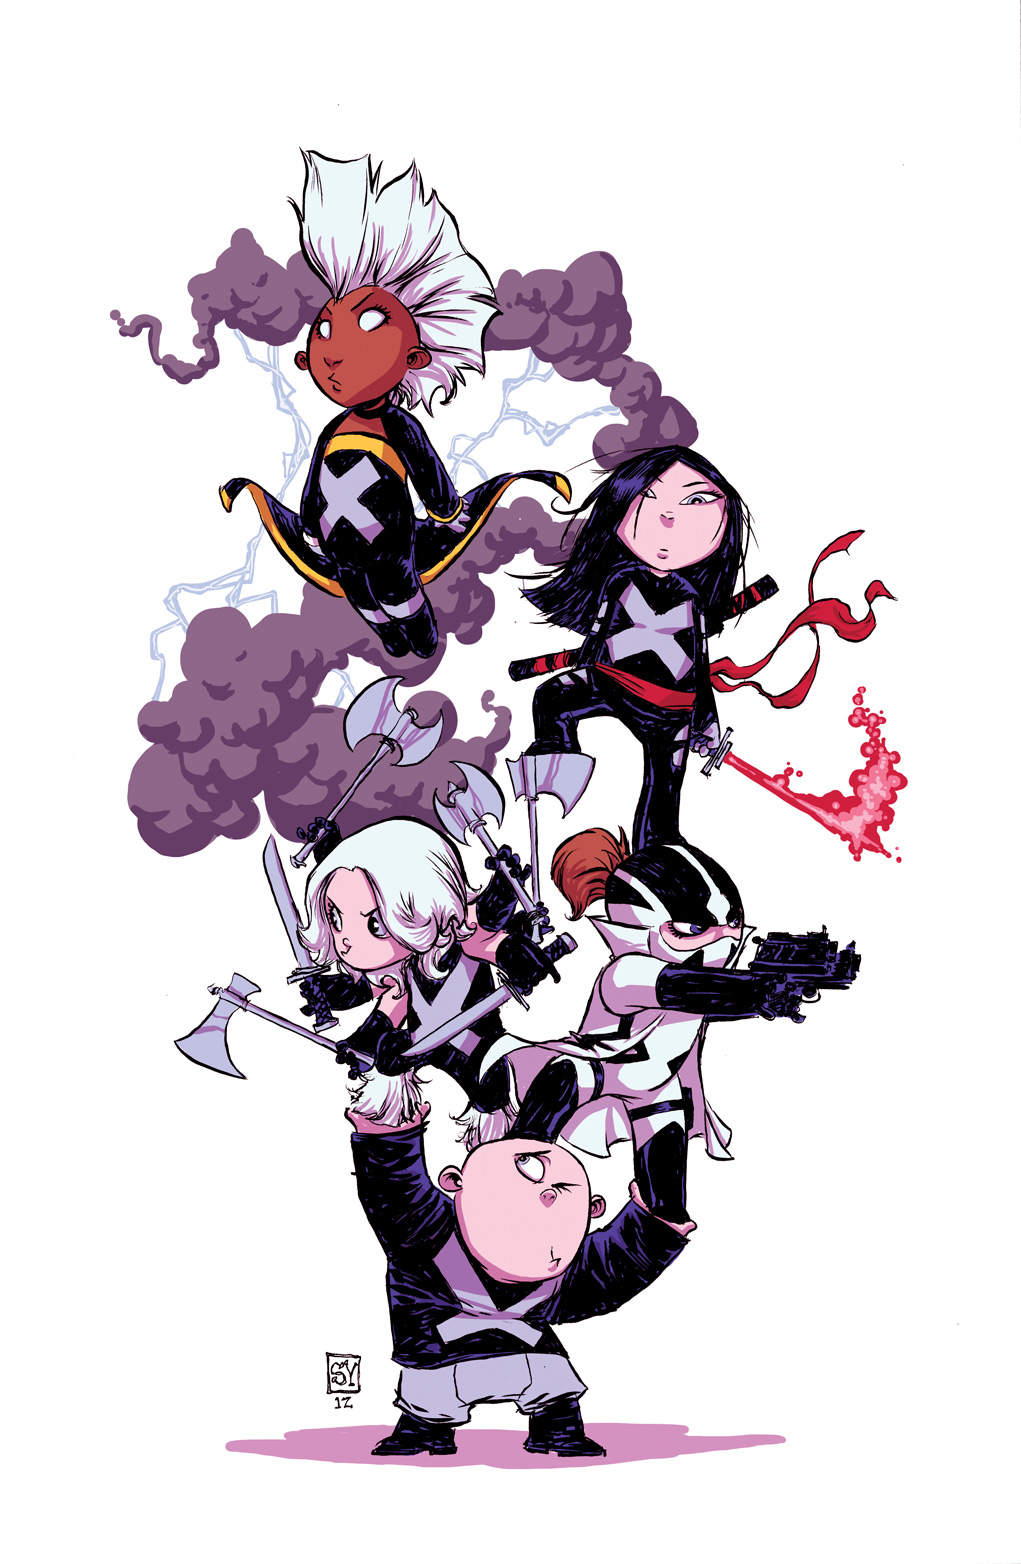 UNCANNY X-FORCE #1 YOUNG VAR NOW